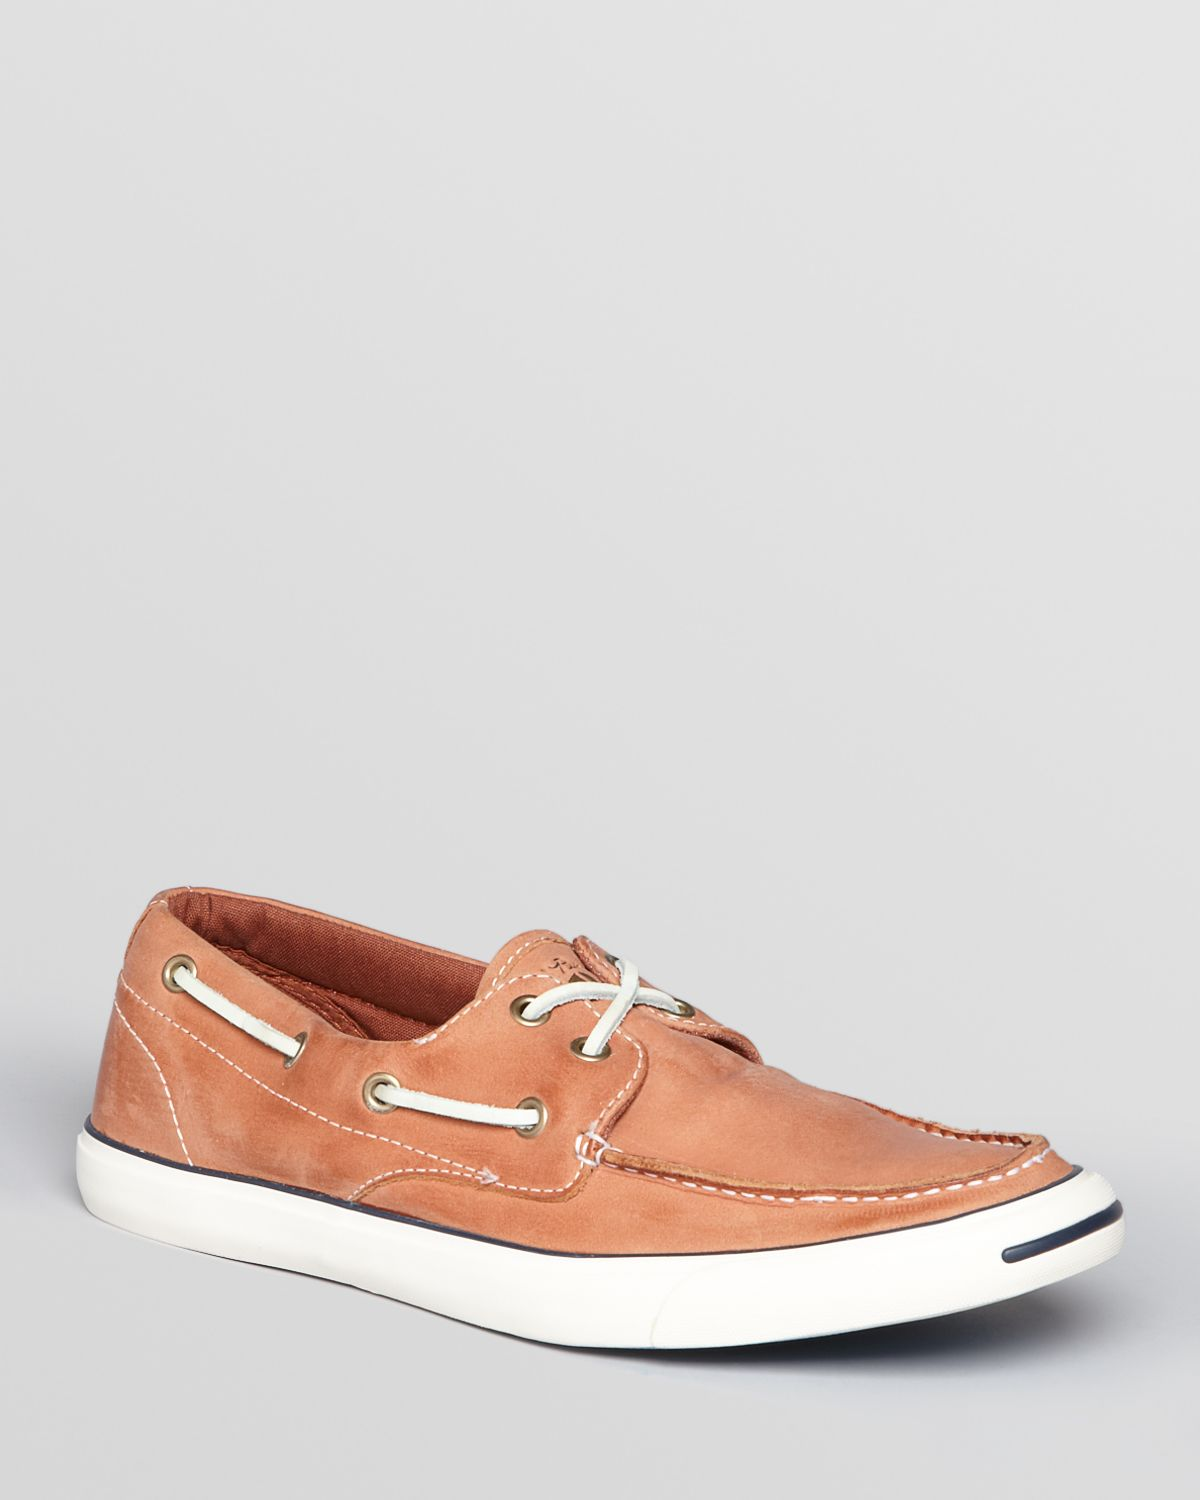 Leather Boat Shoes For Men Images Home